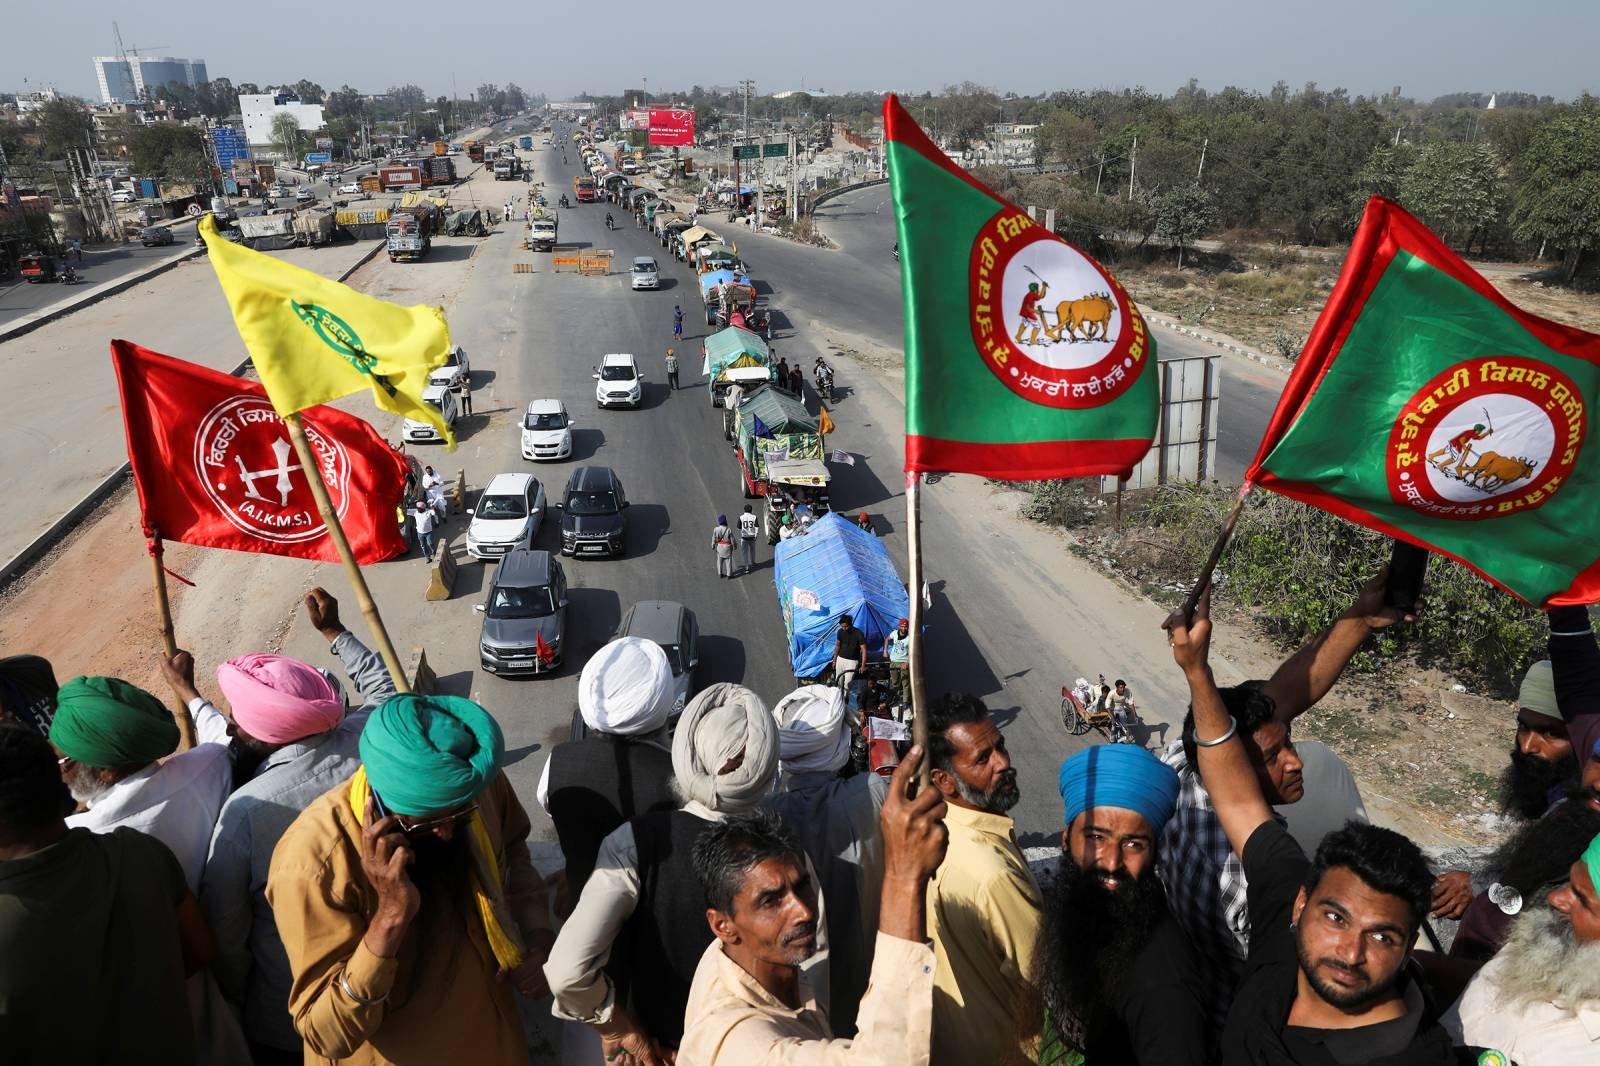 Farmers cheer and wave flags near Kundli border in Haryana, India, as more tractors arrive from Punjab to participate in the ongoing farmers' protest at Singhu border, to mark the 100th day of demonstrations on March 6.